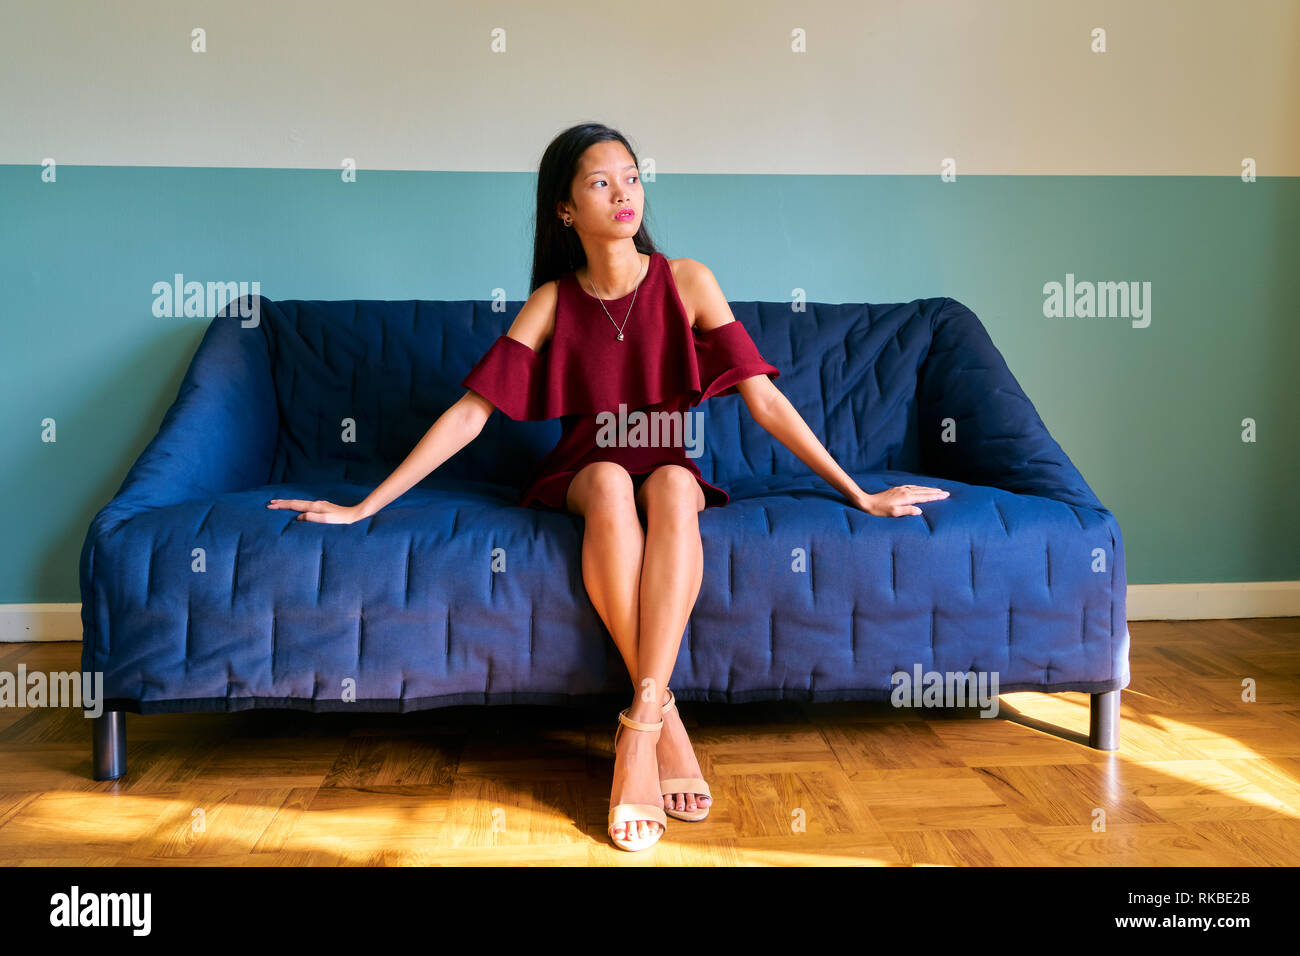 Beautiful woman posing - attractive young woman waiting someone - Stock Image